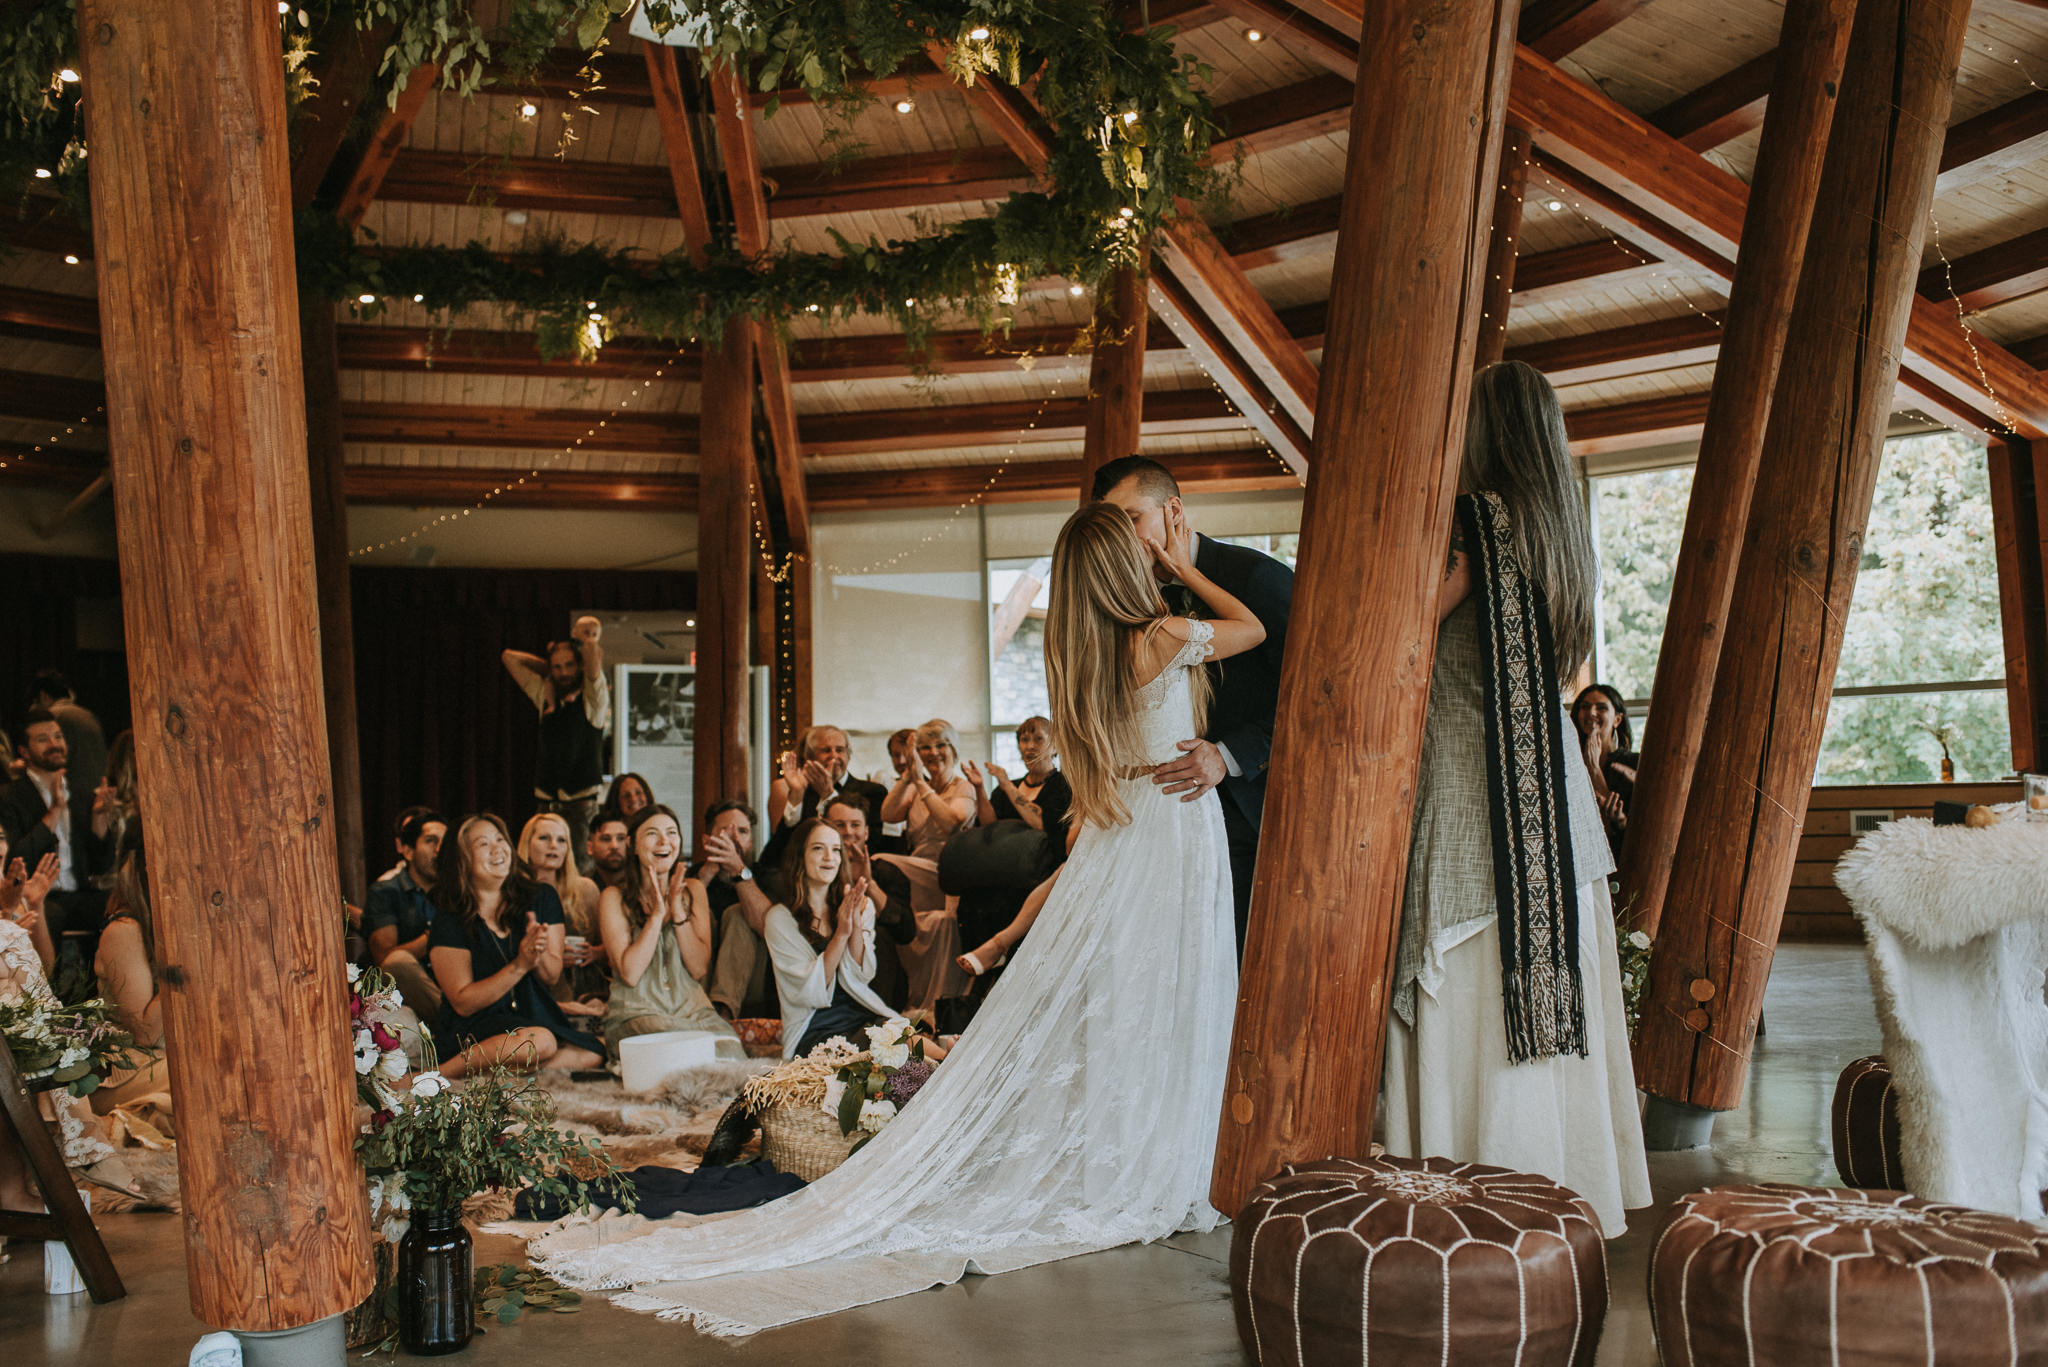 Sheleana and I were married on June 22nd, 2019 at the Squamish Lil'Wat Cultural Centre in Whistler, BC, Canada.